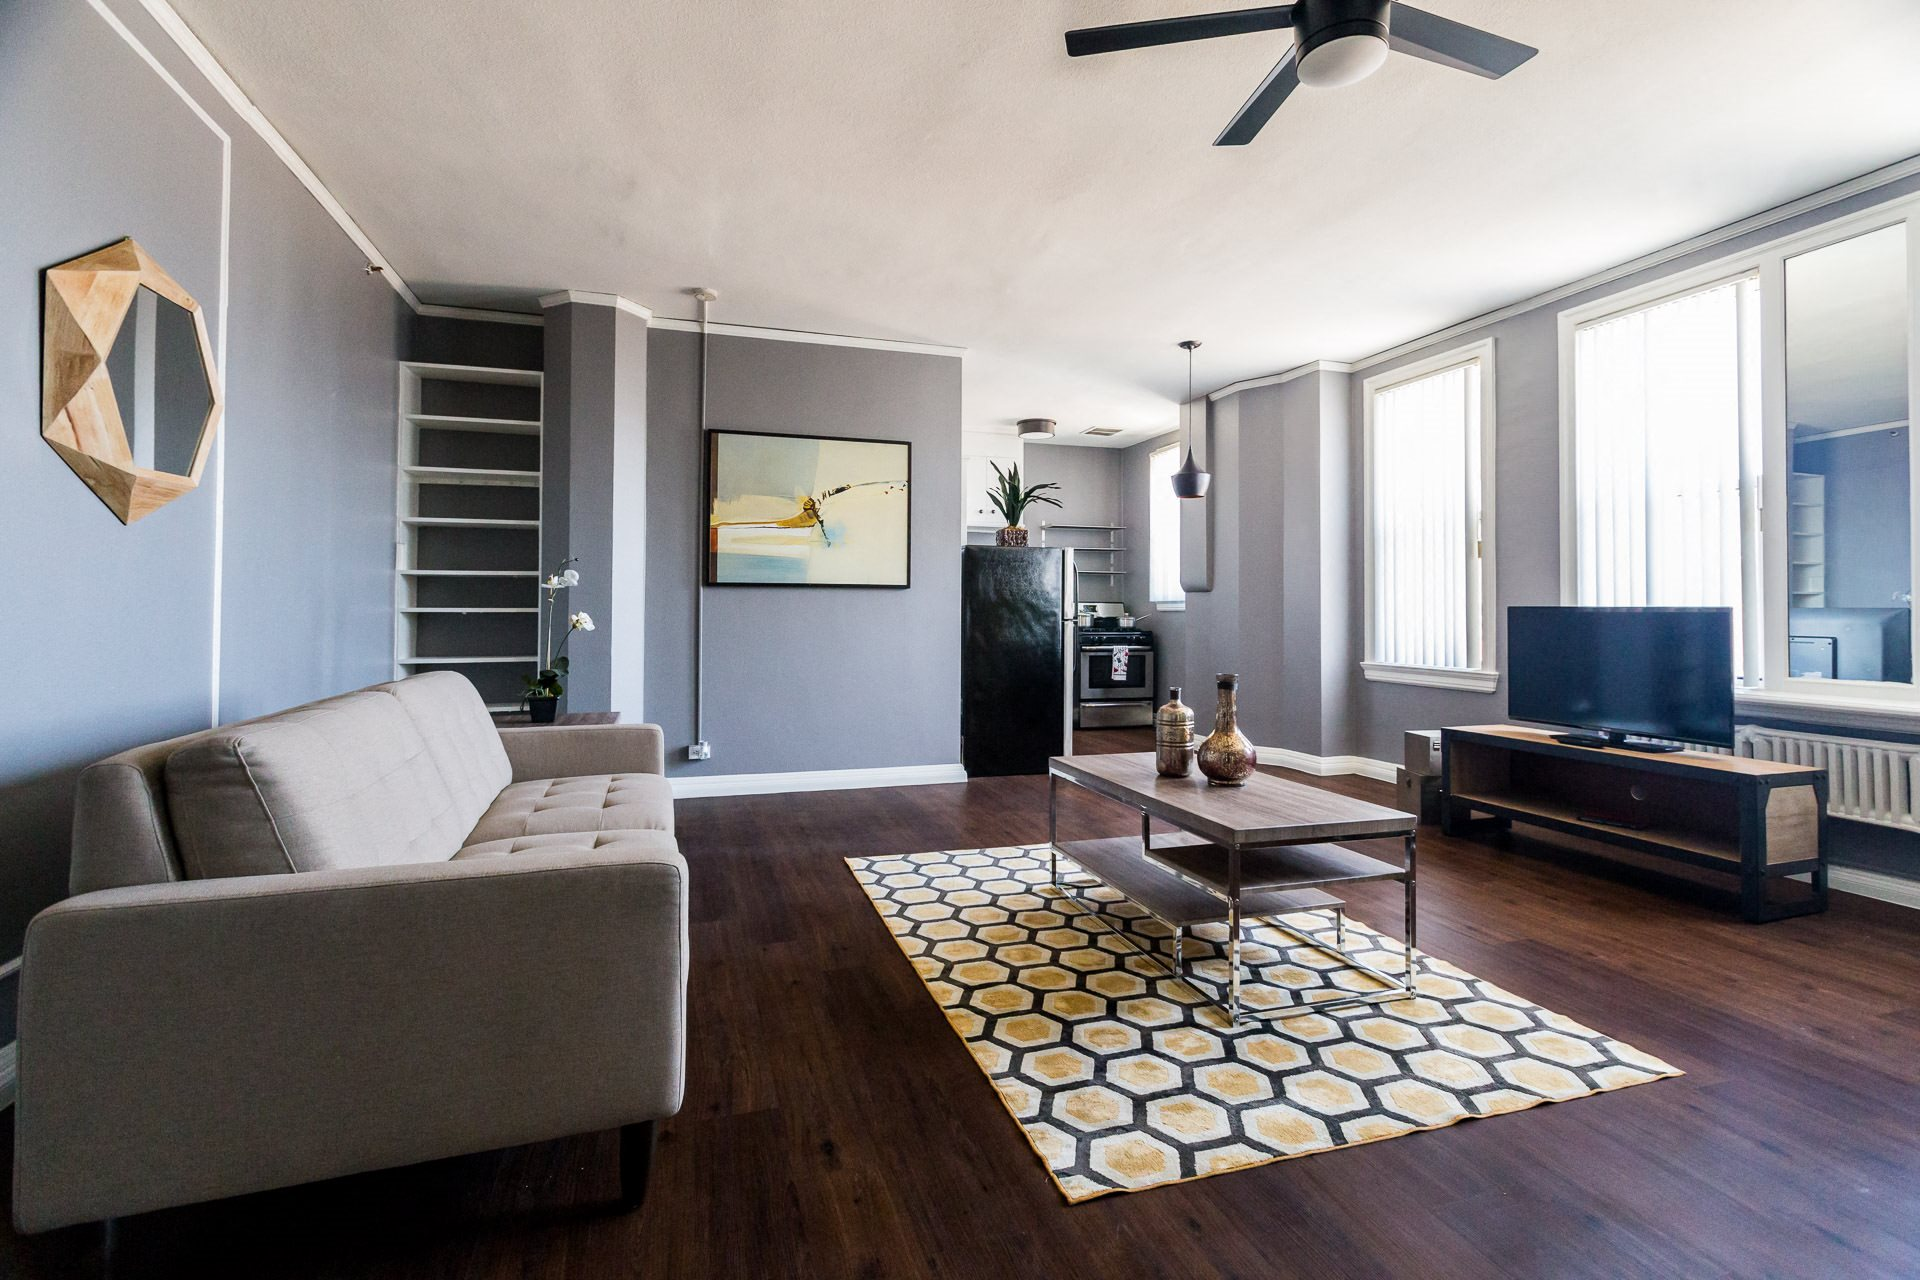 Apartments Westlake-Wilshire Royale Open and Spacious Living Room with Modern Designs and Built-in Shelves